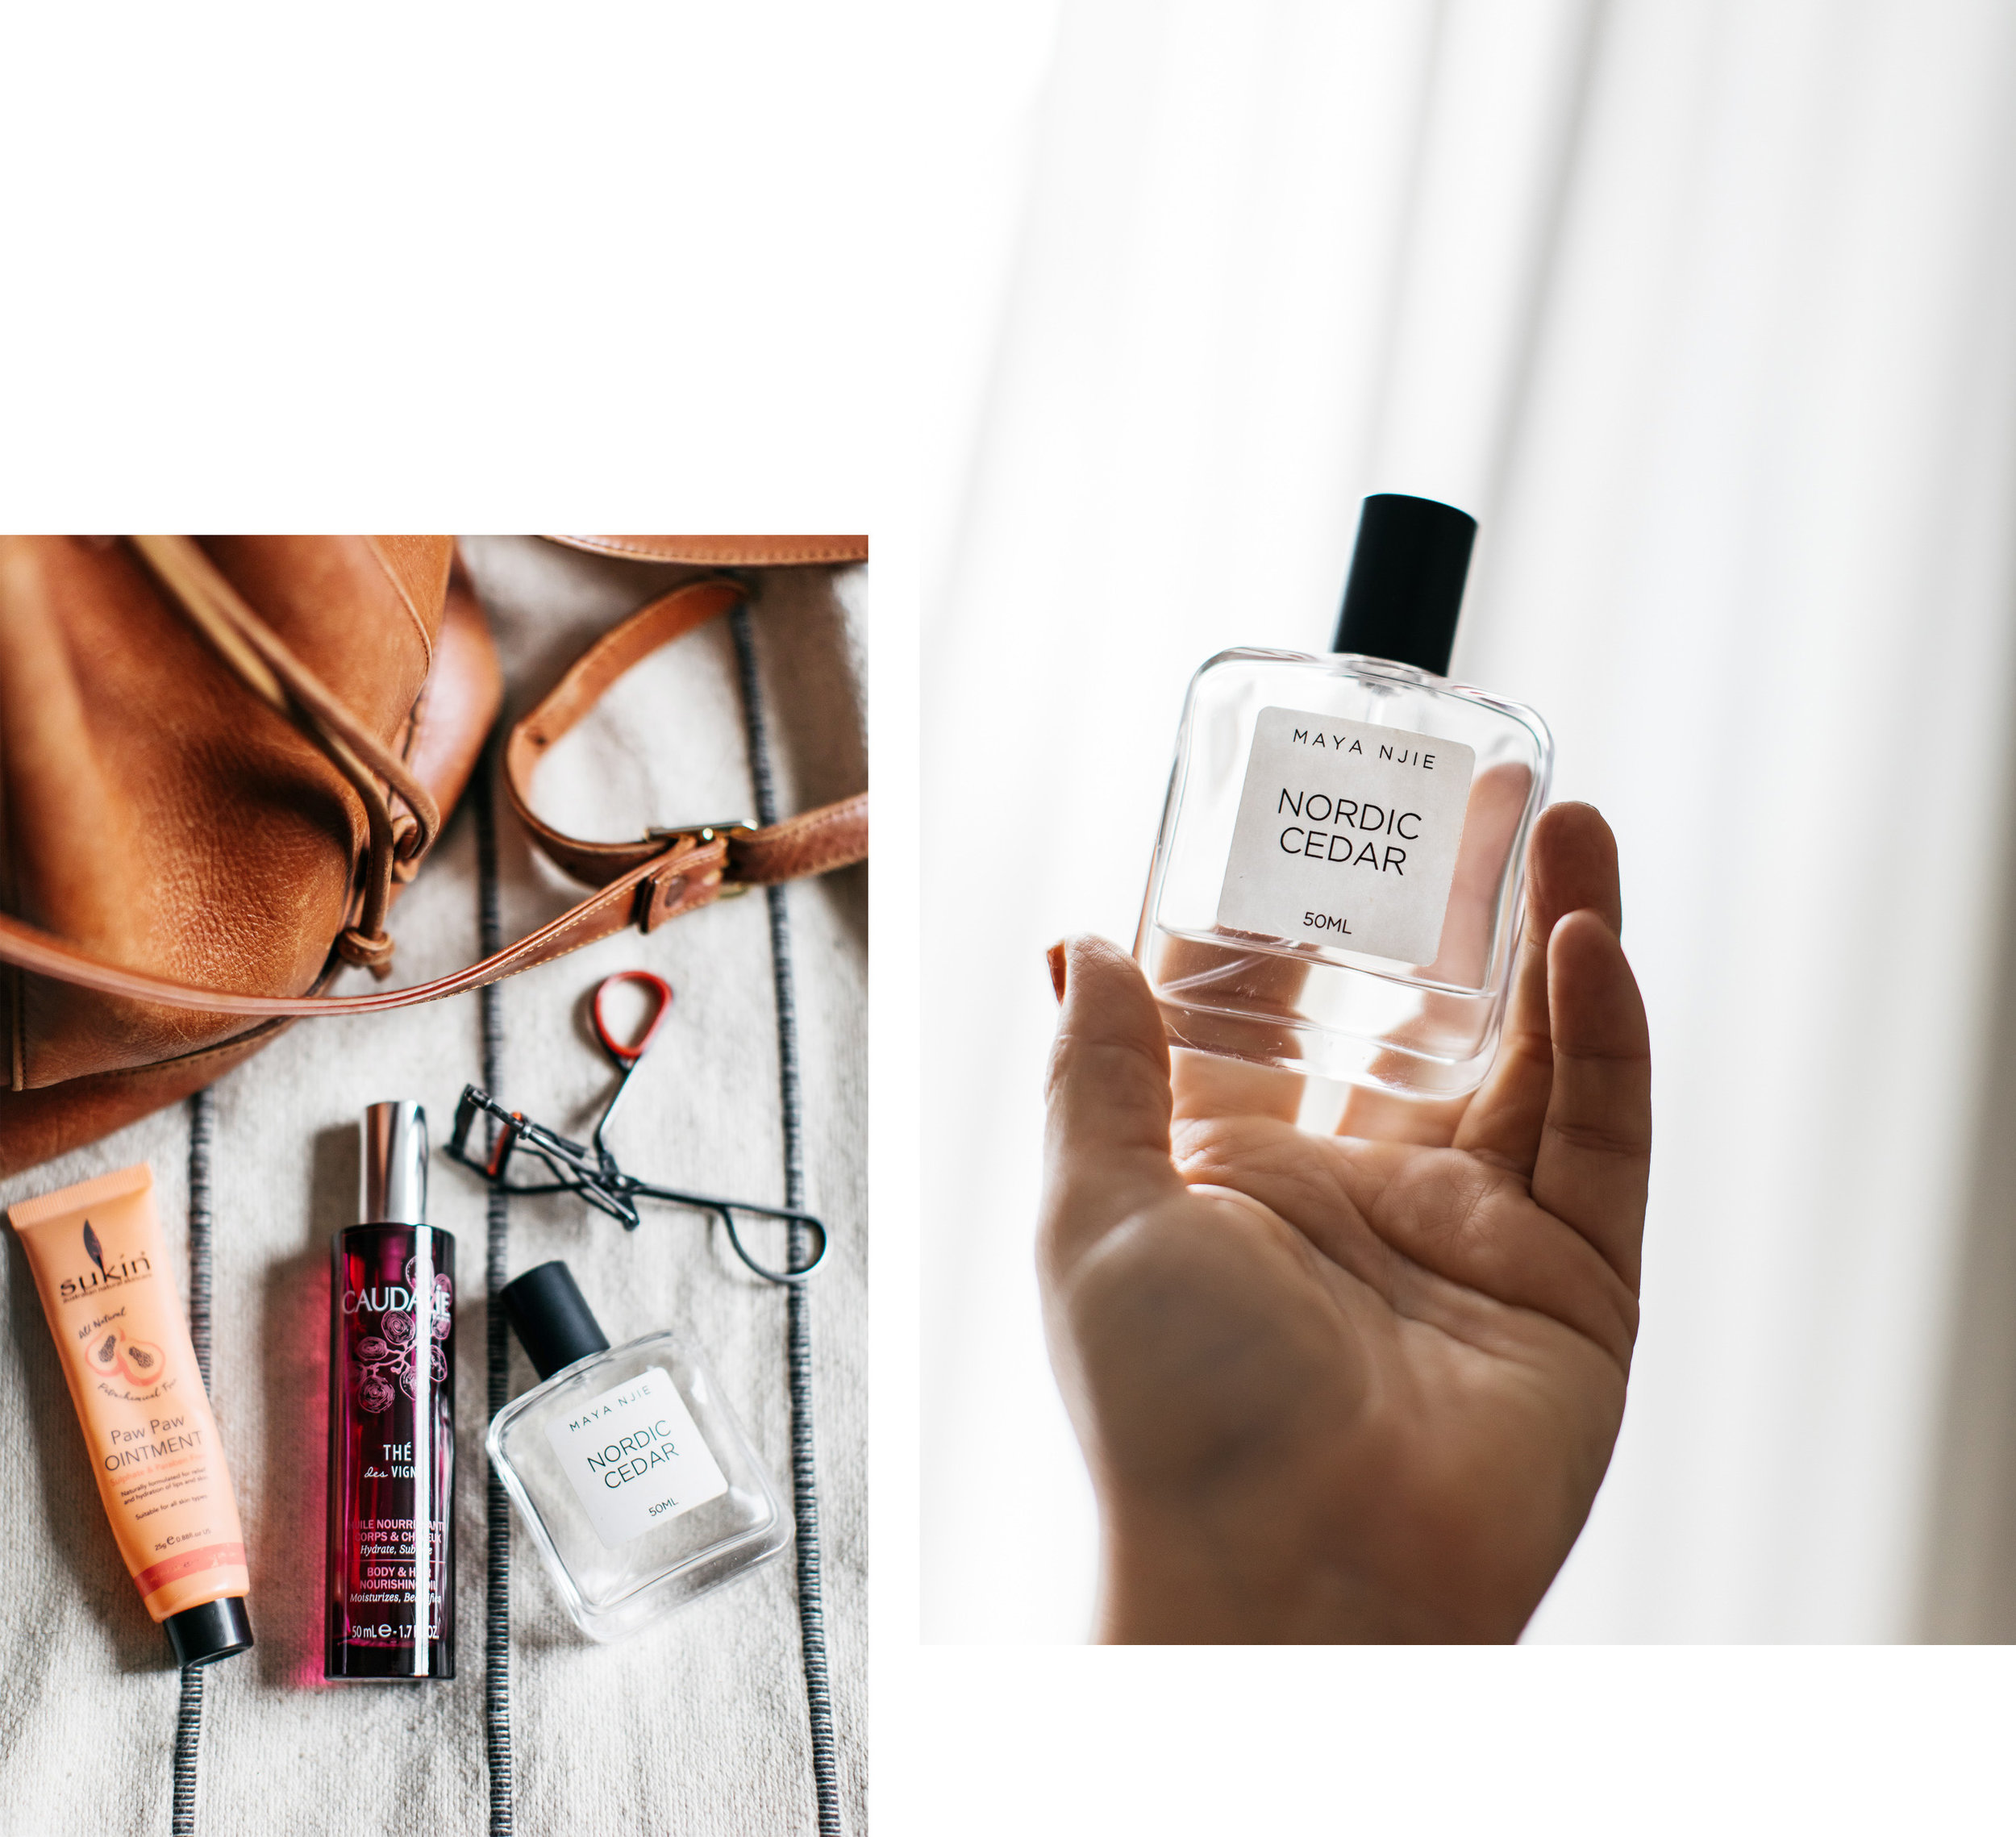 4 products that give a bit of conscious indulgence when leaving the house